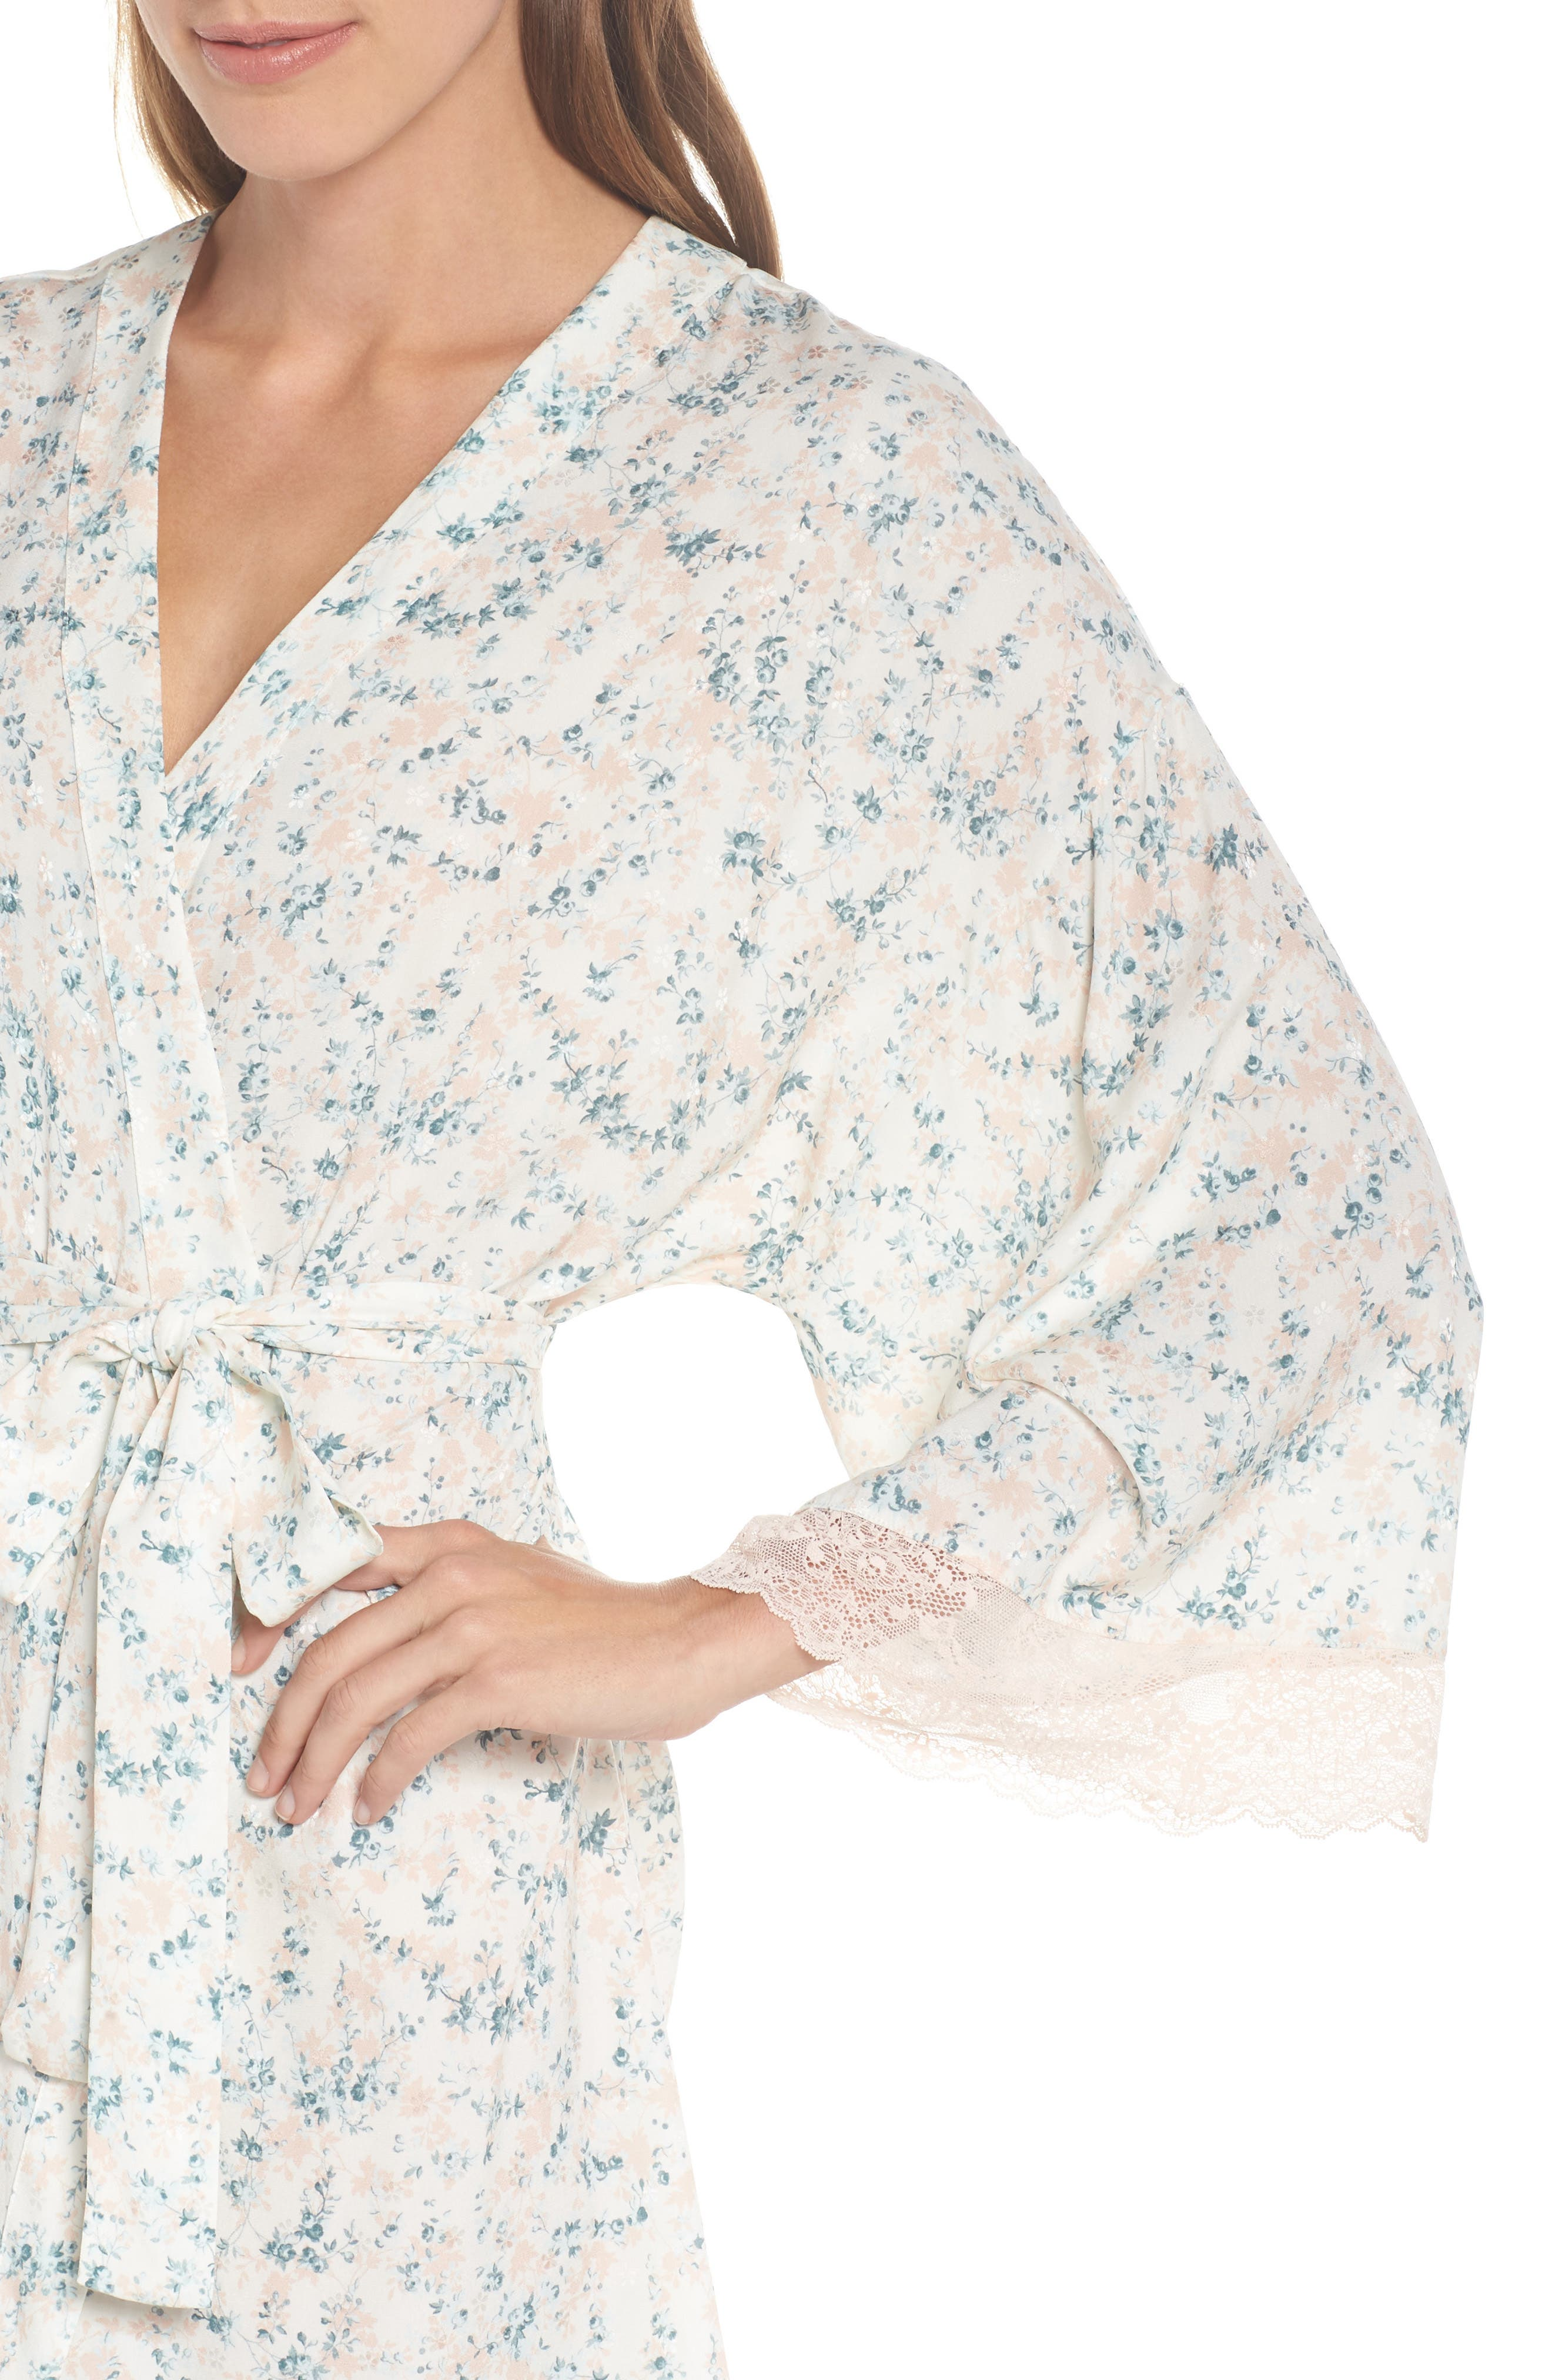 Lily Stretch Silk Short Robe,                             Alternate thumbnail 5, color,                             Ivory Floral Print